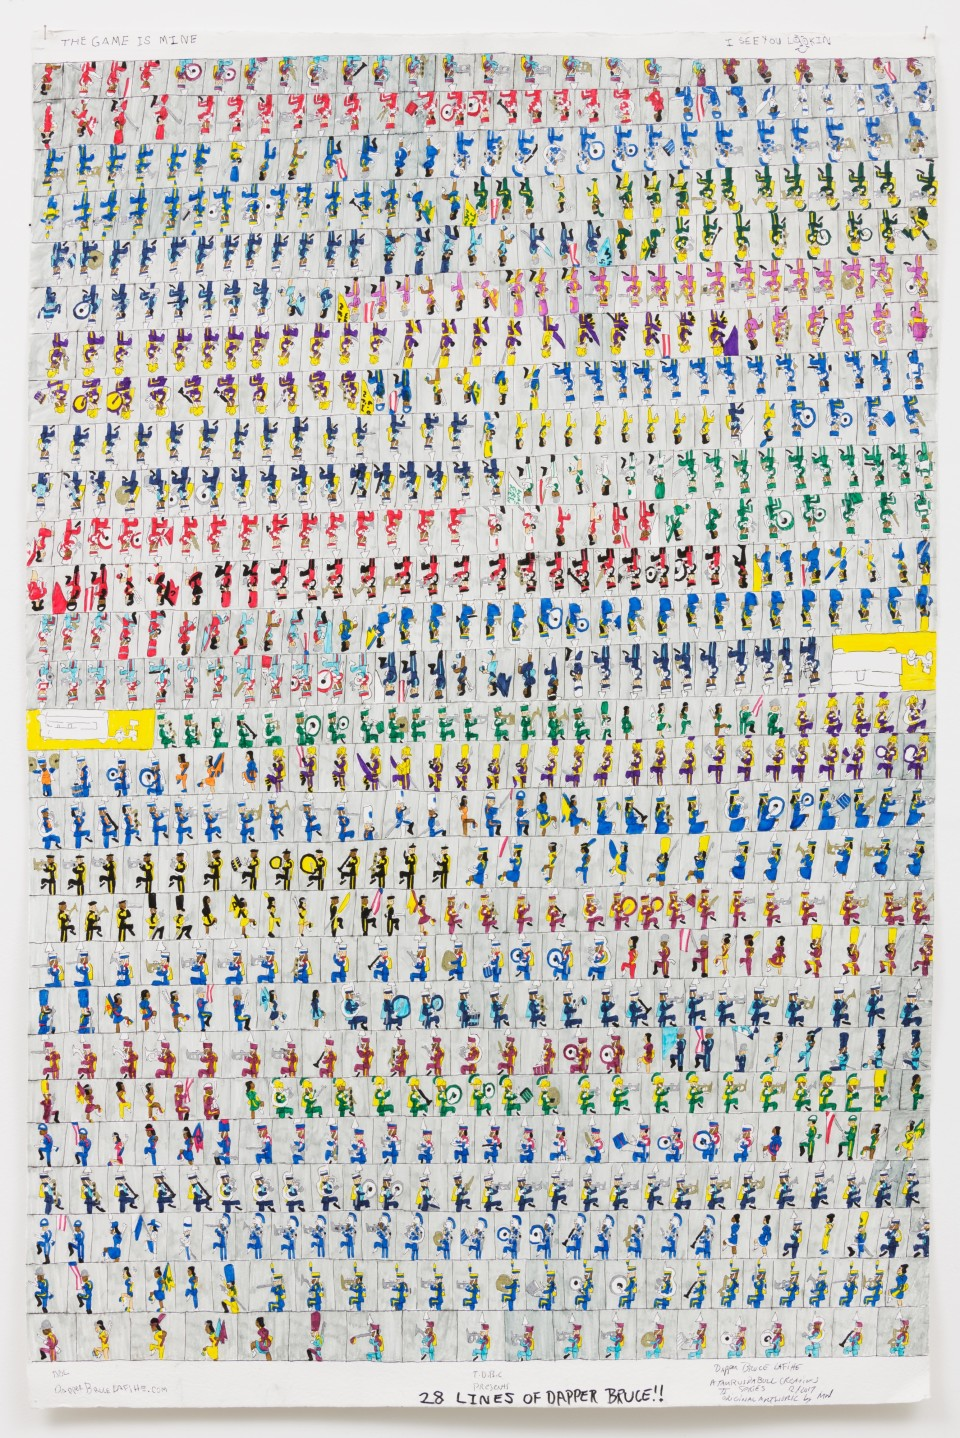 Image: Dapper Bruce Lafitte  T.D.B.C. Presents 28 Lines Of Dapper Bruce!!, 2017  signed and dated  archival ink on acid free paper  62 x 42 inches (157.5 x 106.7 cm)